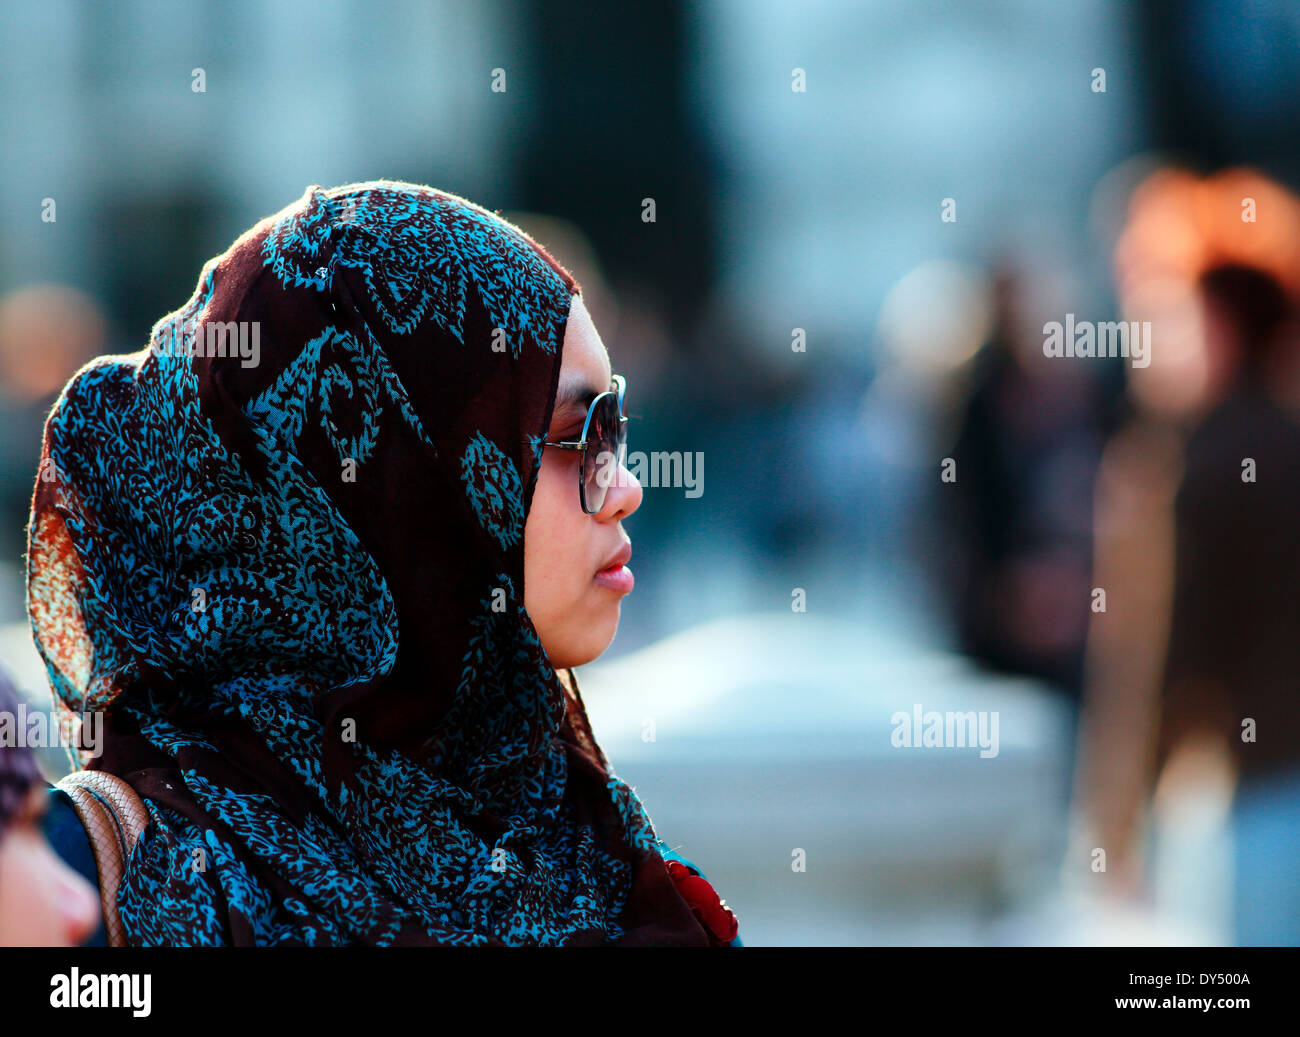 Jeune fille musulmane en foulard Photo Stock